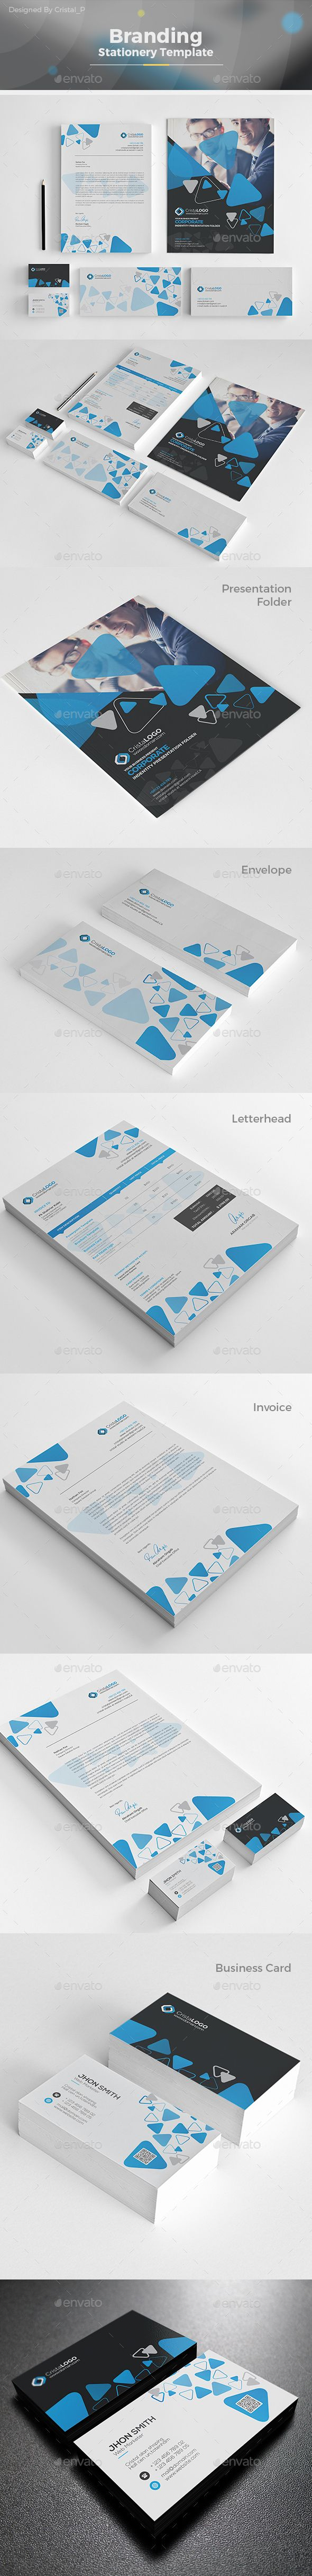 Branding Stationery Template Vector EPS, AI Illustrator